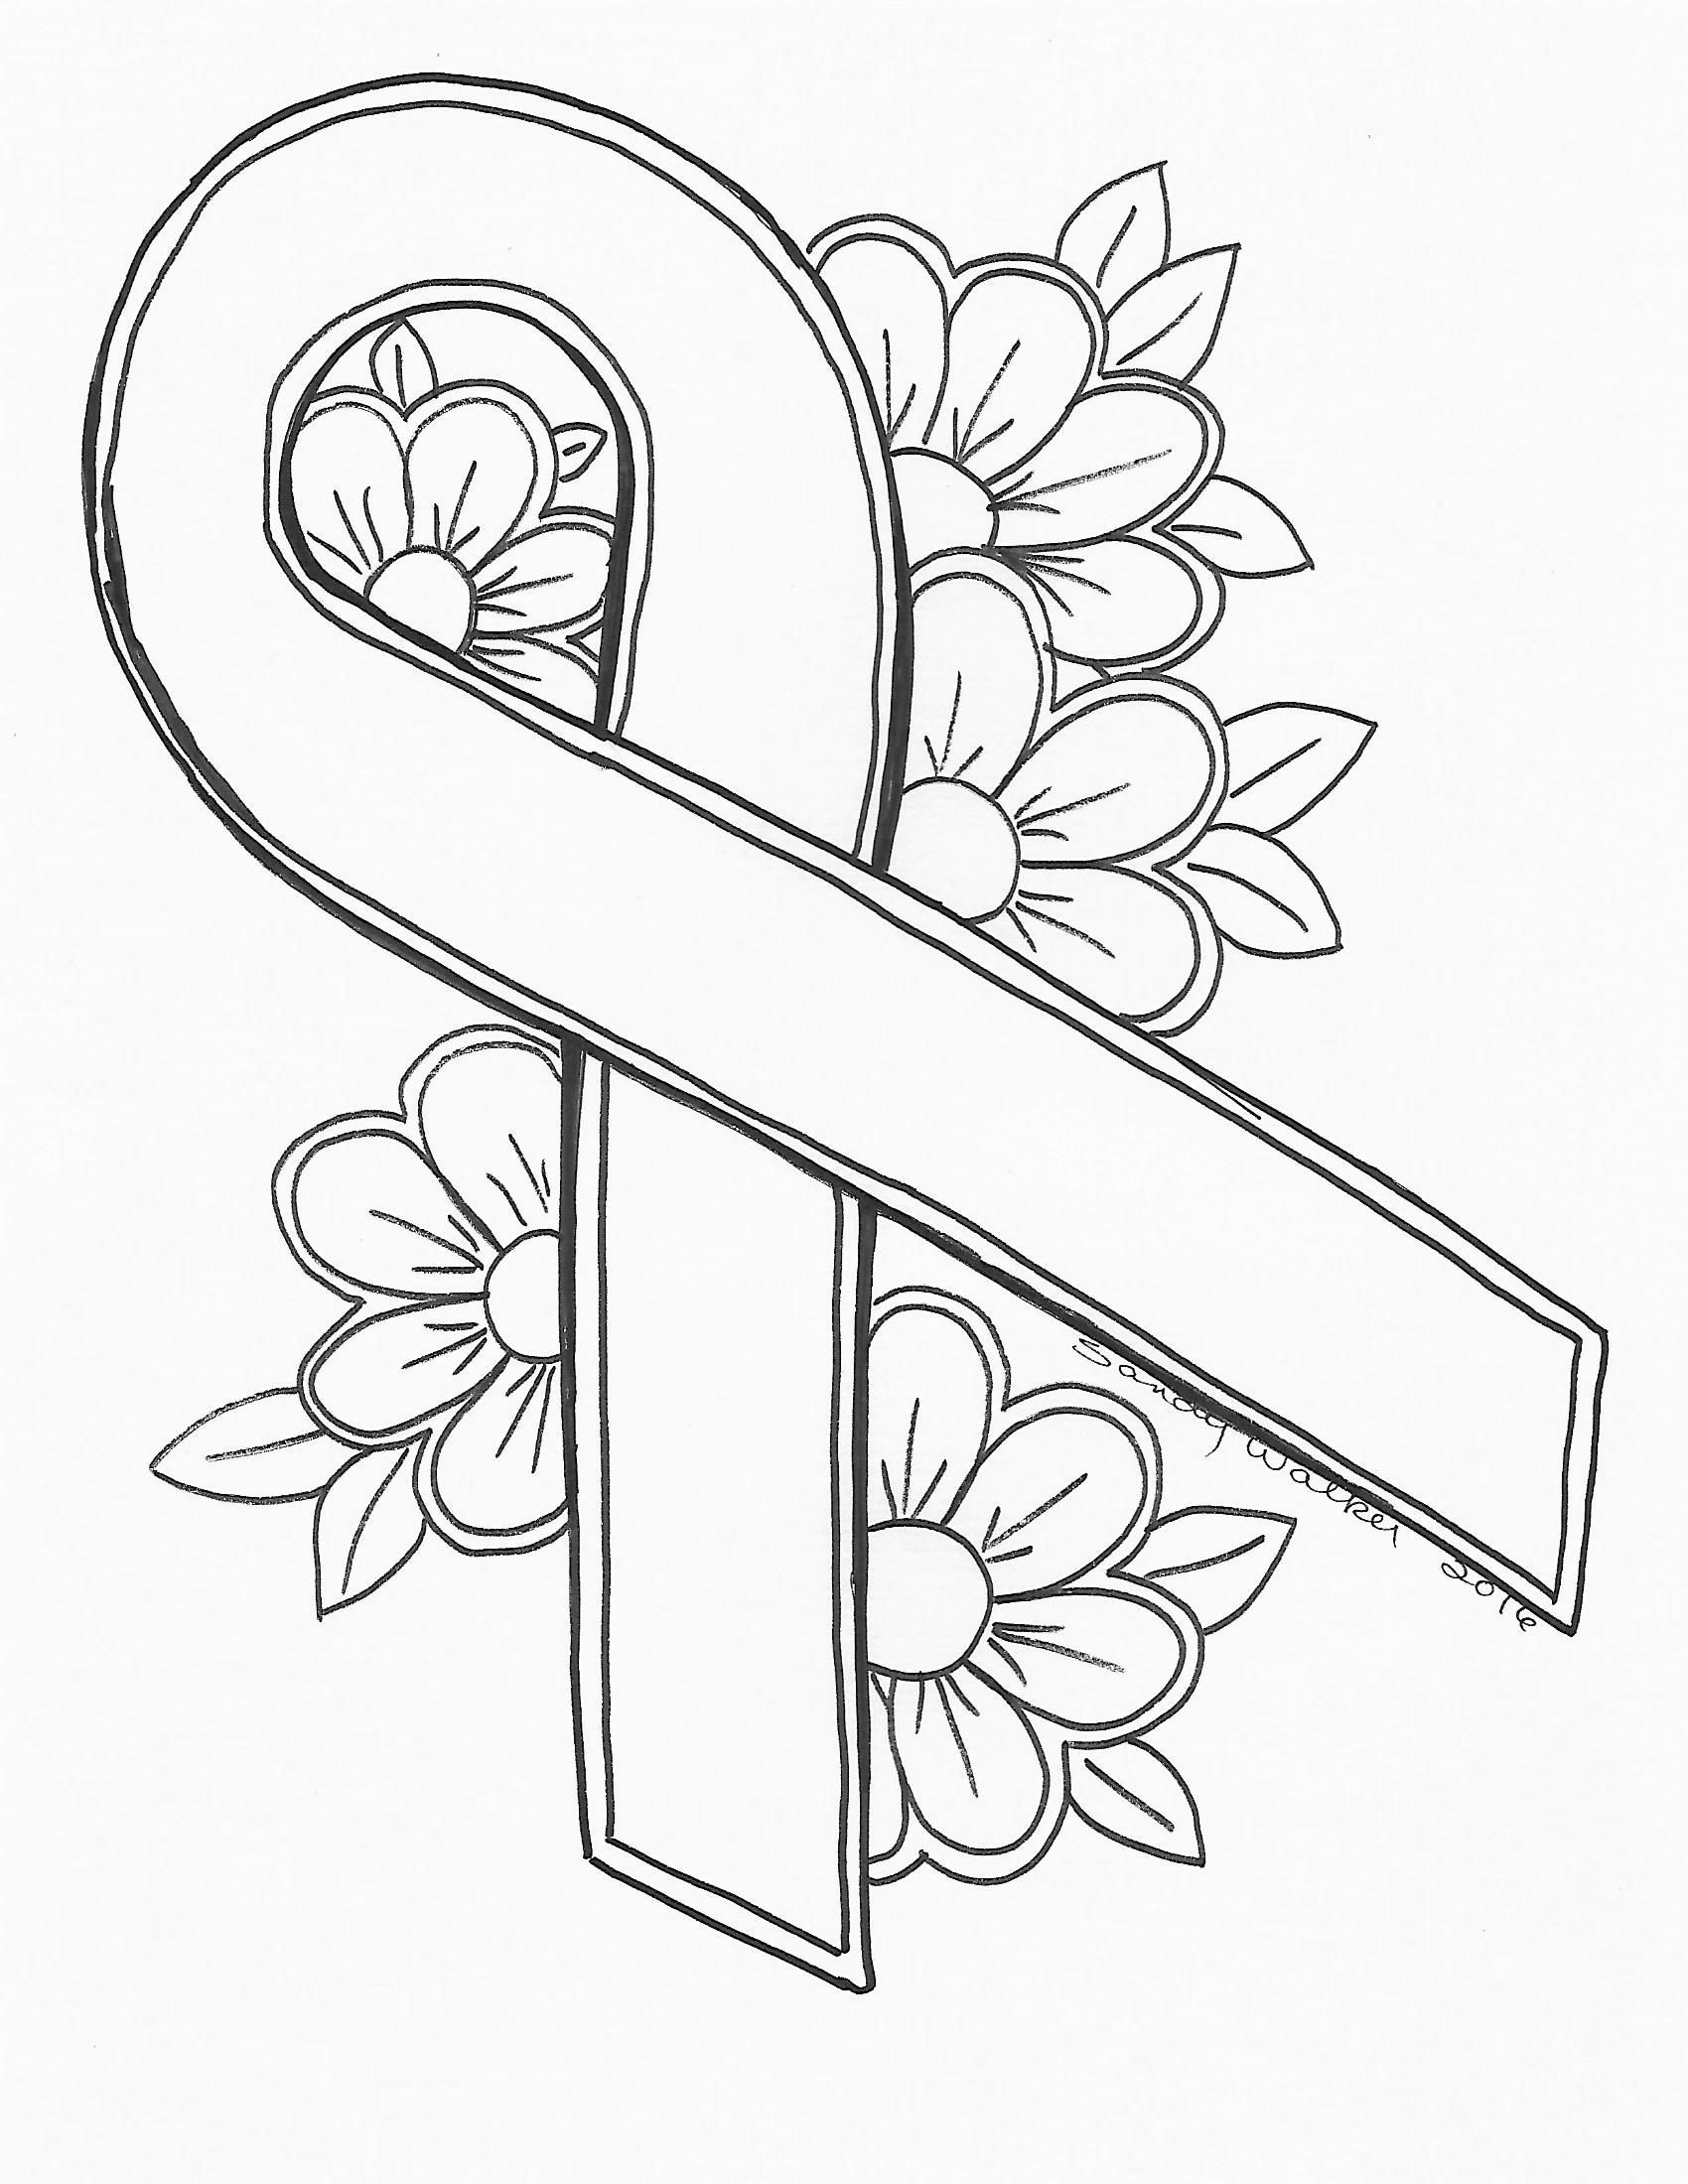 An original by sandra walker 2016 ribbon for cancer color it any an original by sandra walker 2016 ribbon for cancer color it any color you biocorpaavc Gallery